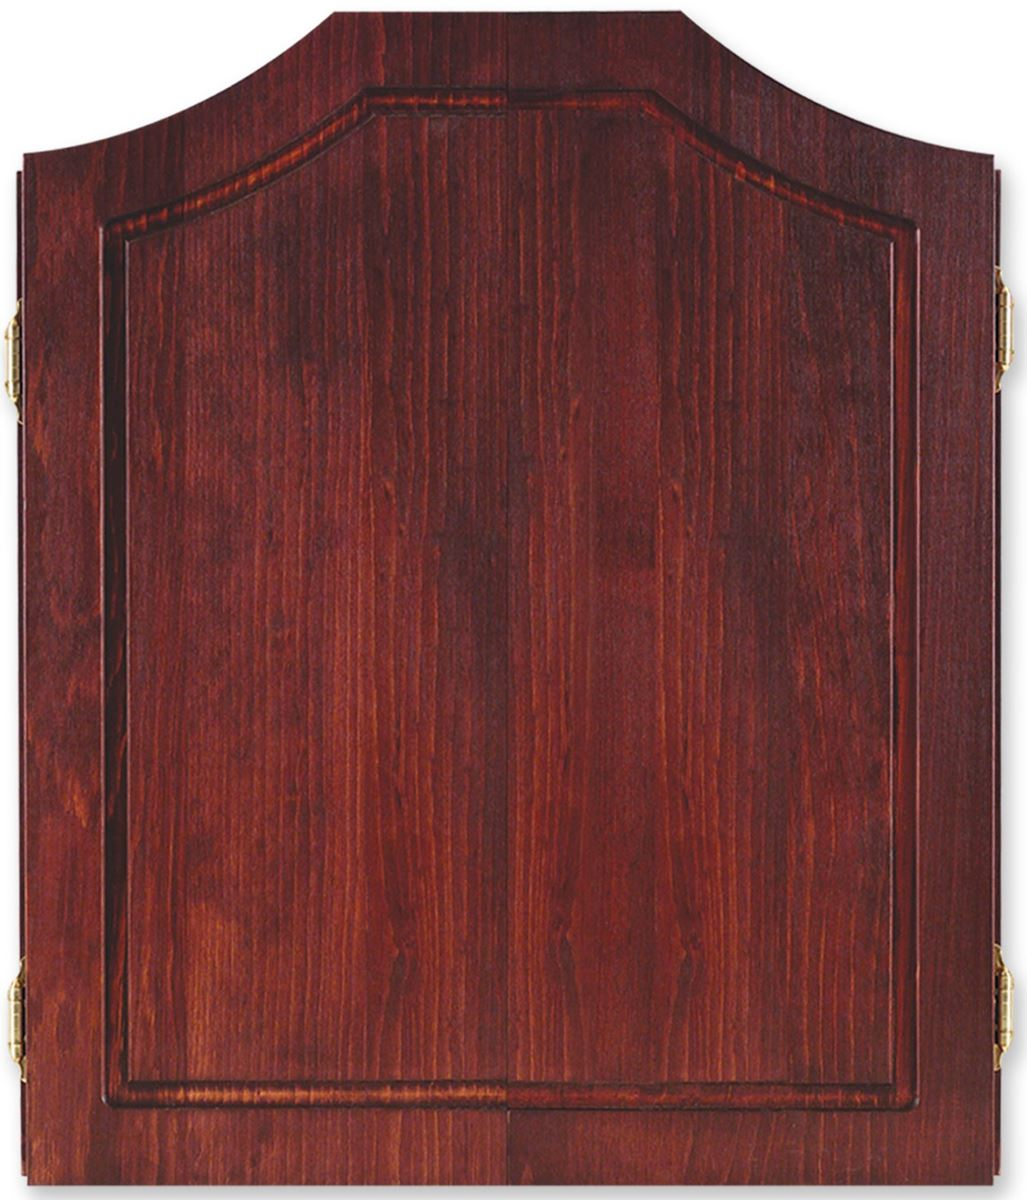 Stained Pine Kitchen Cabinets: Dart World Pine Cabinet- Mahogany Stain